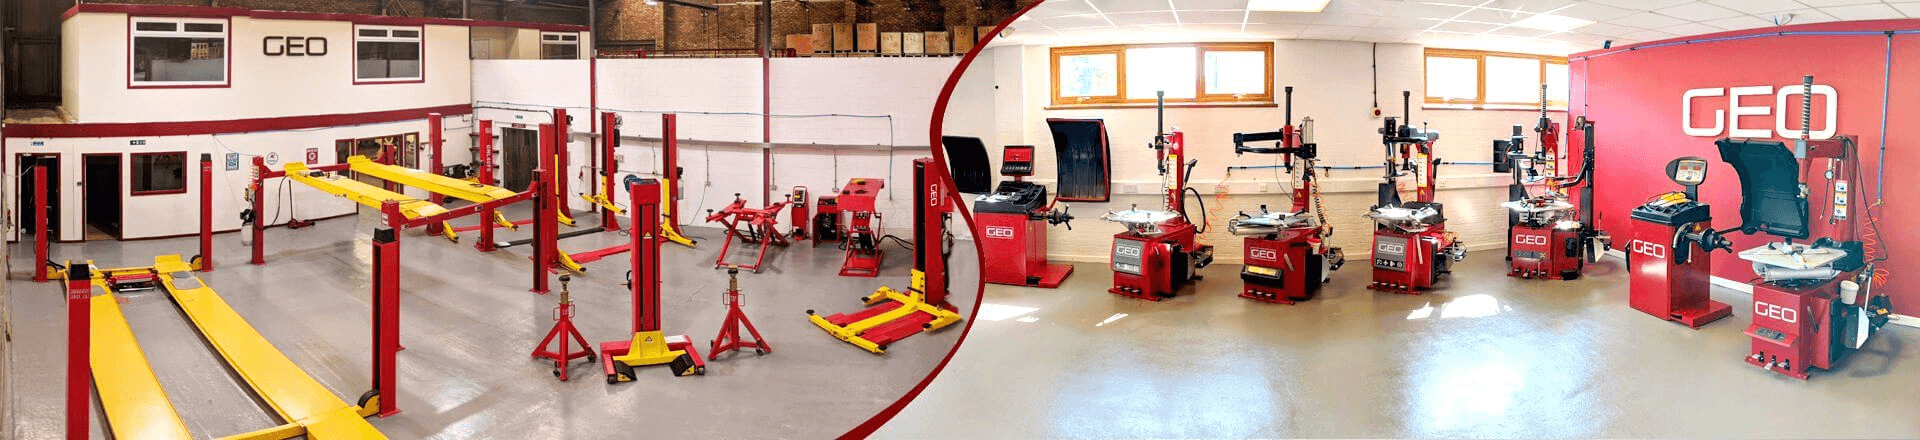 Garage Equipment Supplies from Garage Equipment Online